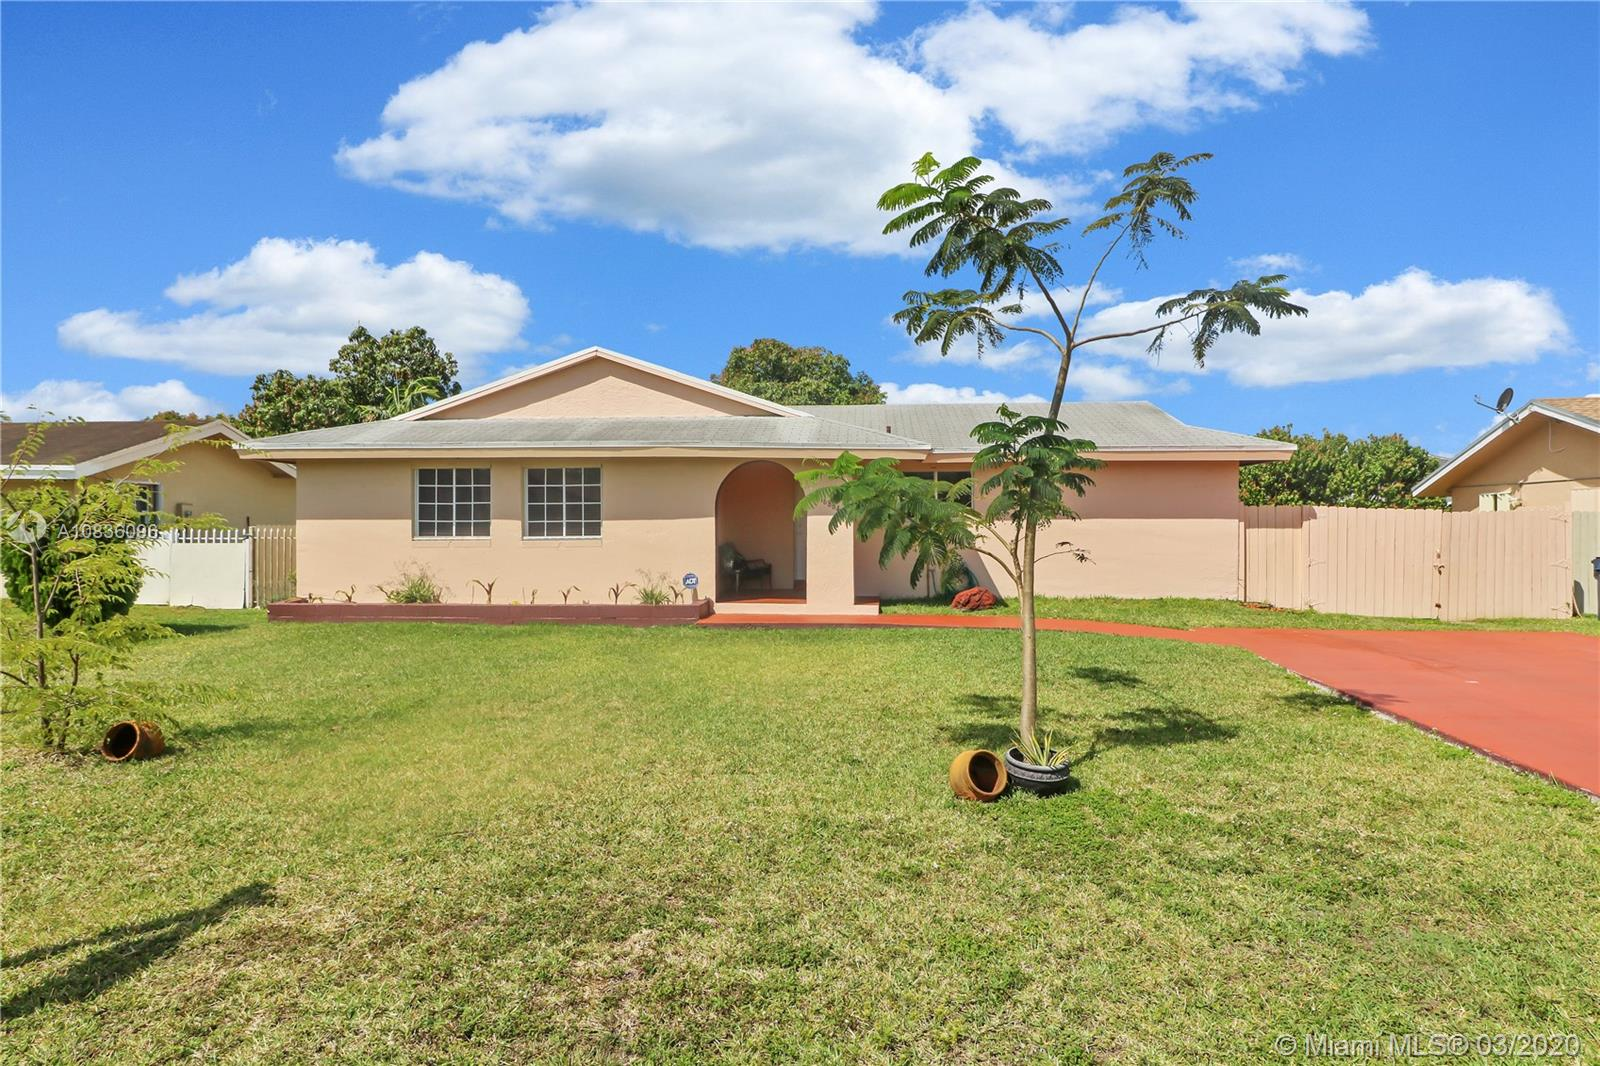 16884 SW 109th Ct, Miami, Florida 33157, 3 Bedrooms Bedrooms, ,2 BathroomsBathrooms,Residential,For Sale,16884 SW 109th Ct,A10836096